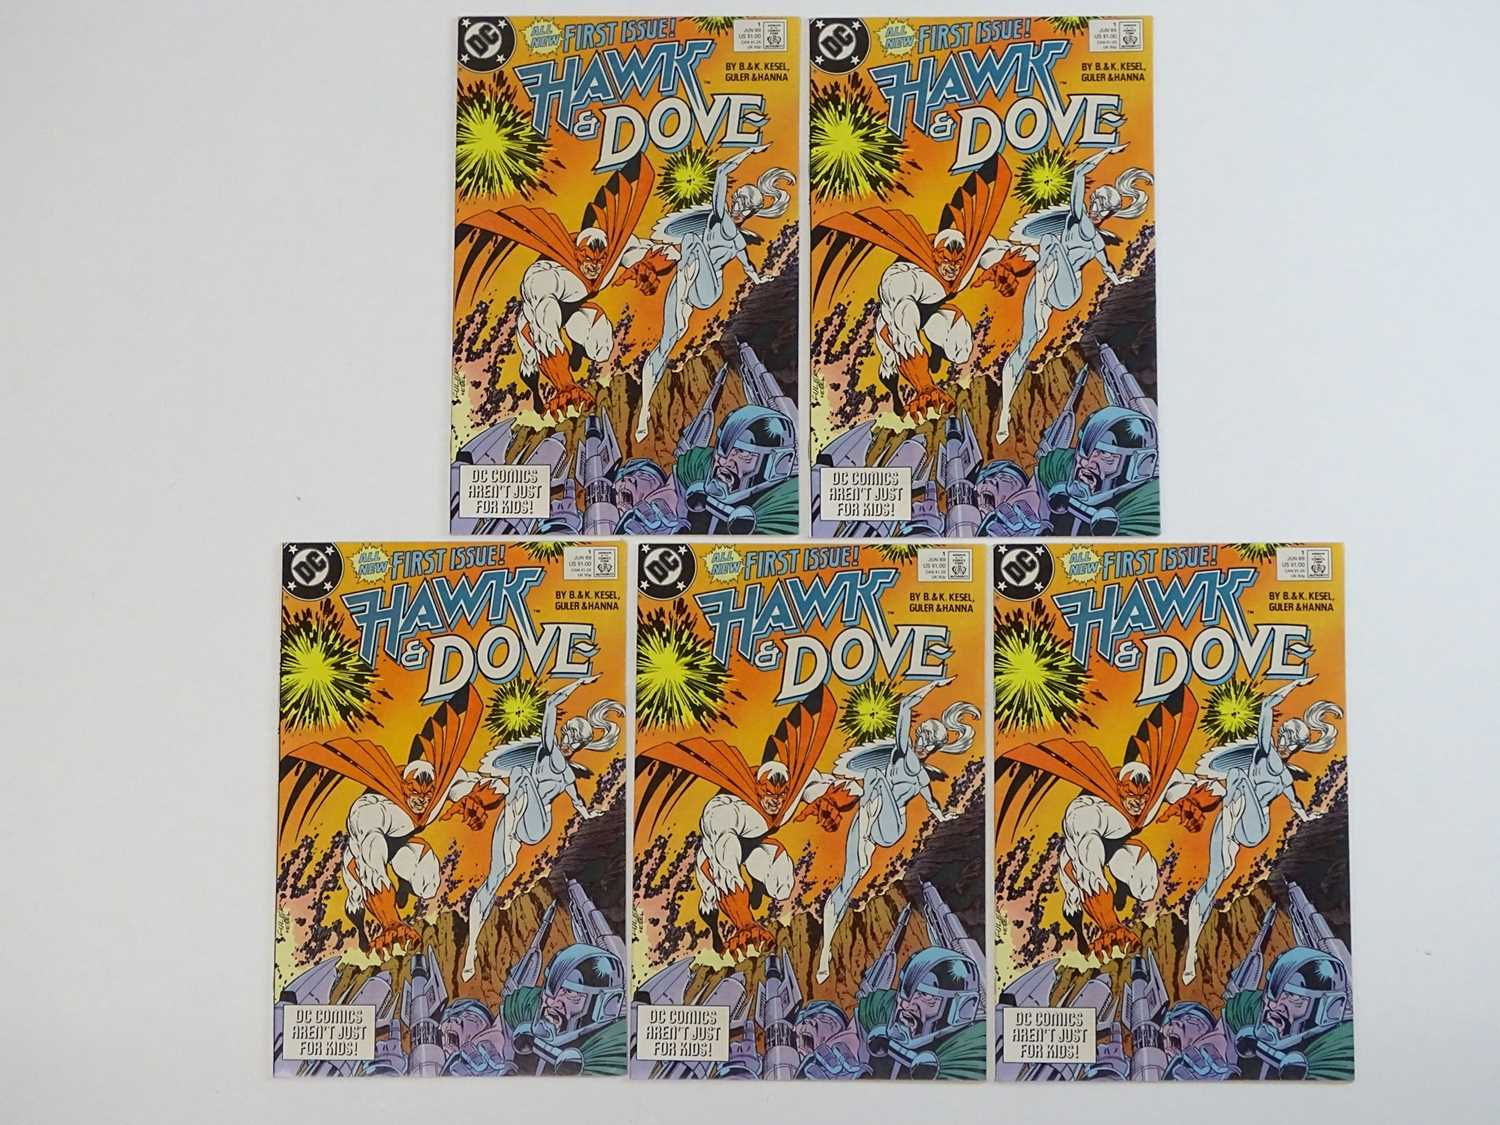 HAWK & DOVE #1 - (5 in Lot) - (1989 - DC) - First Printing - Five (5) #1 issues for the Barbara